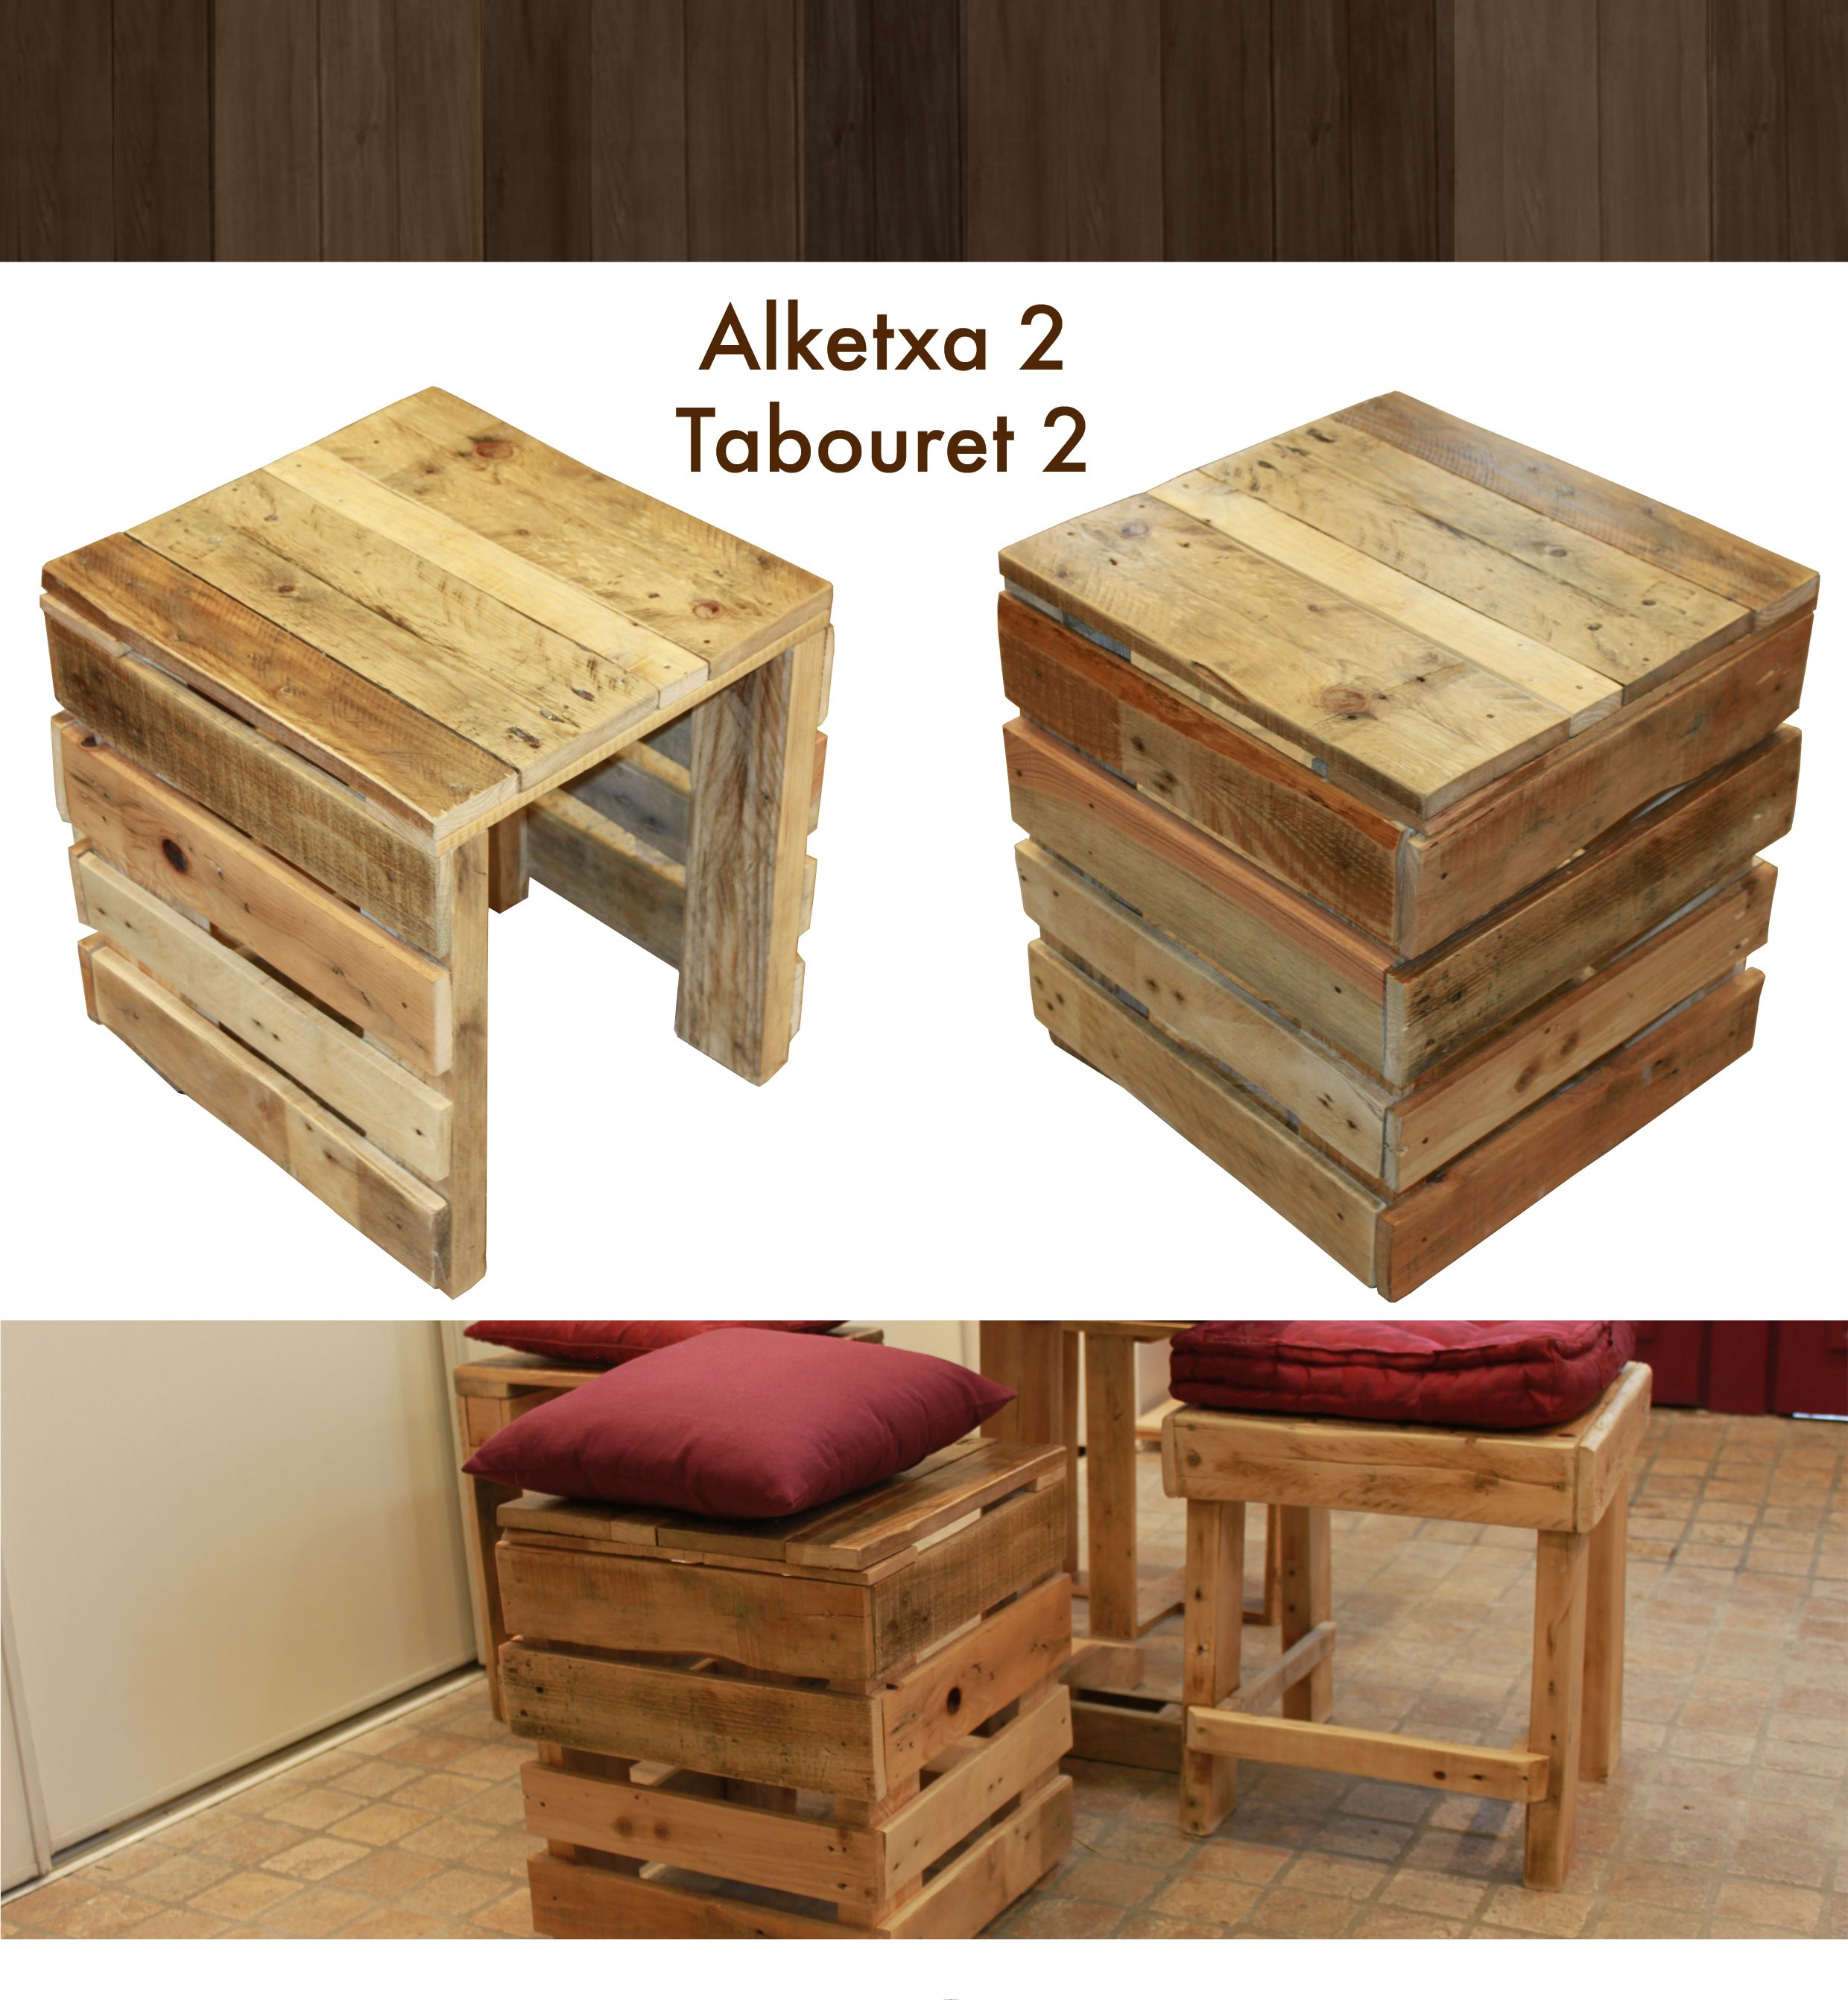 tabouret en bois de palette tabouret pinterest tabouret en bois tabouret et palette. Black Bedroom Furniture Sets. Home Design Ideas